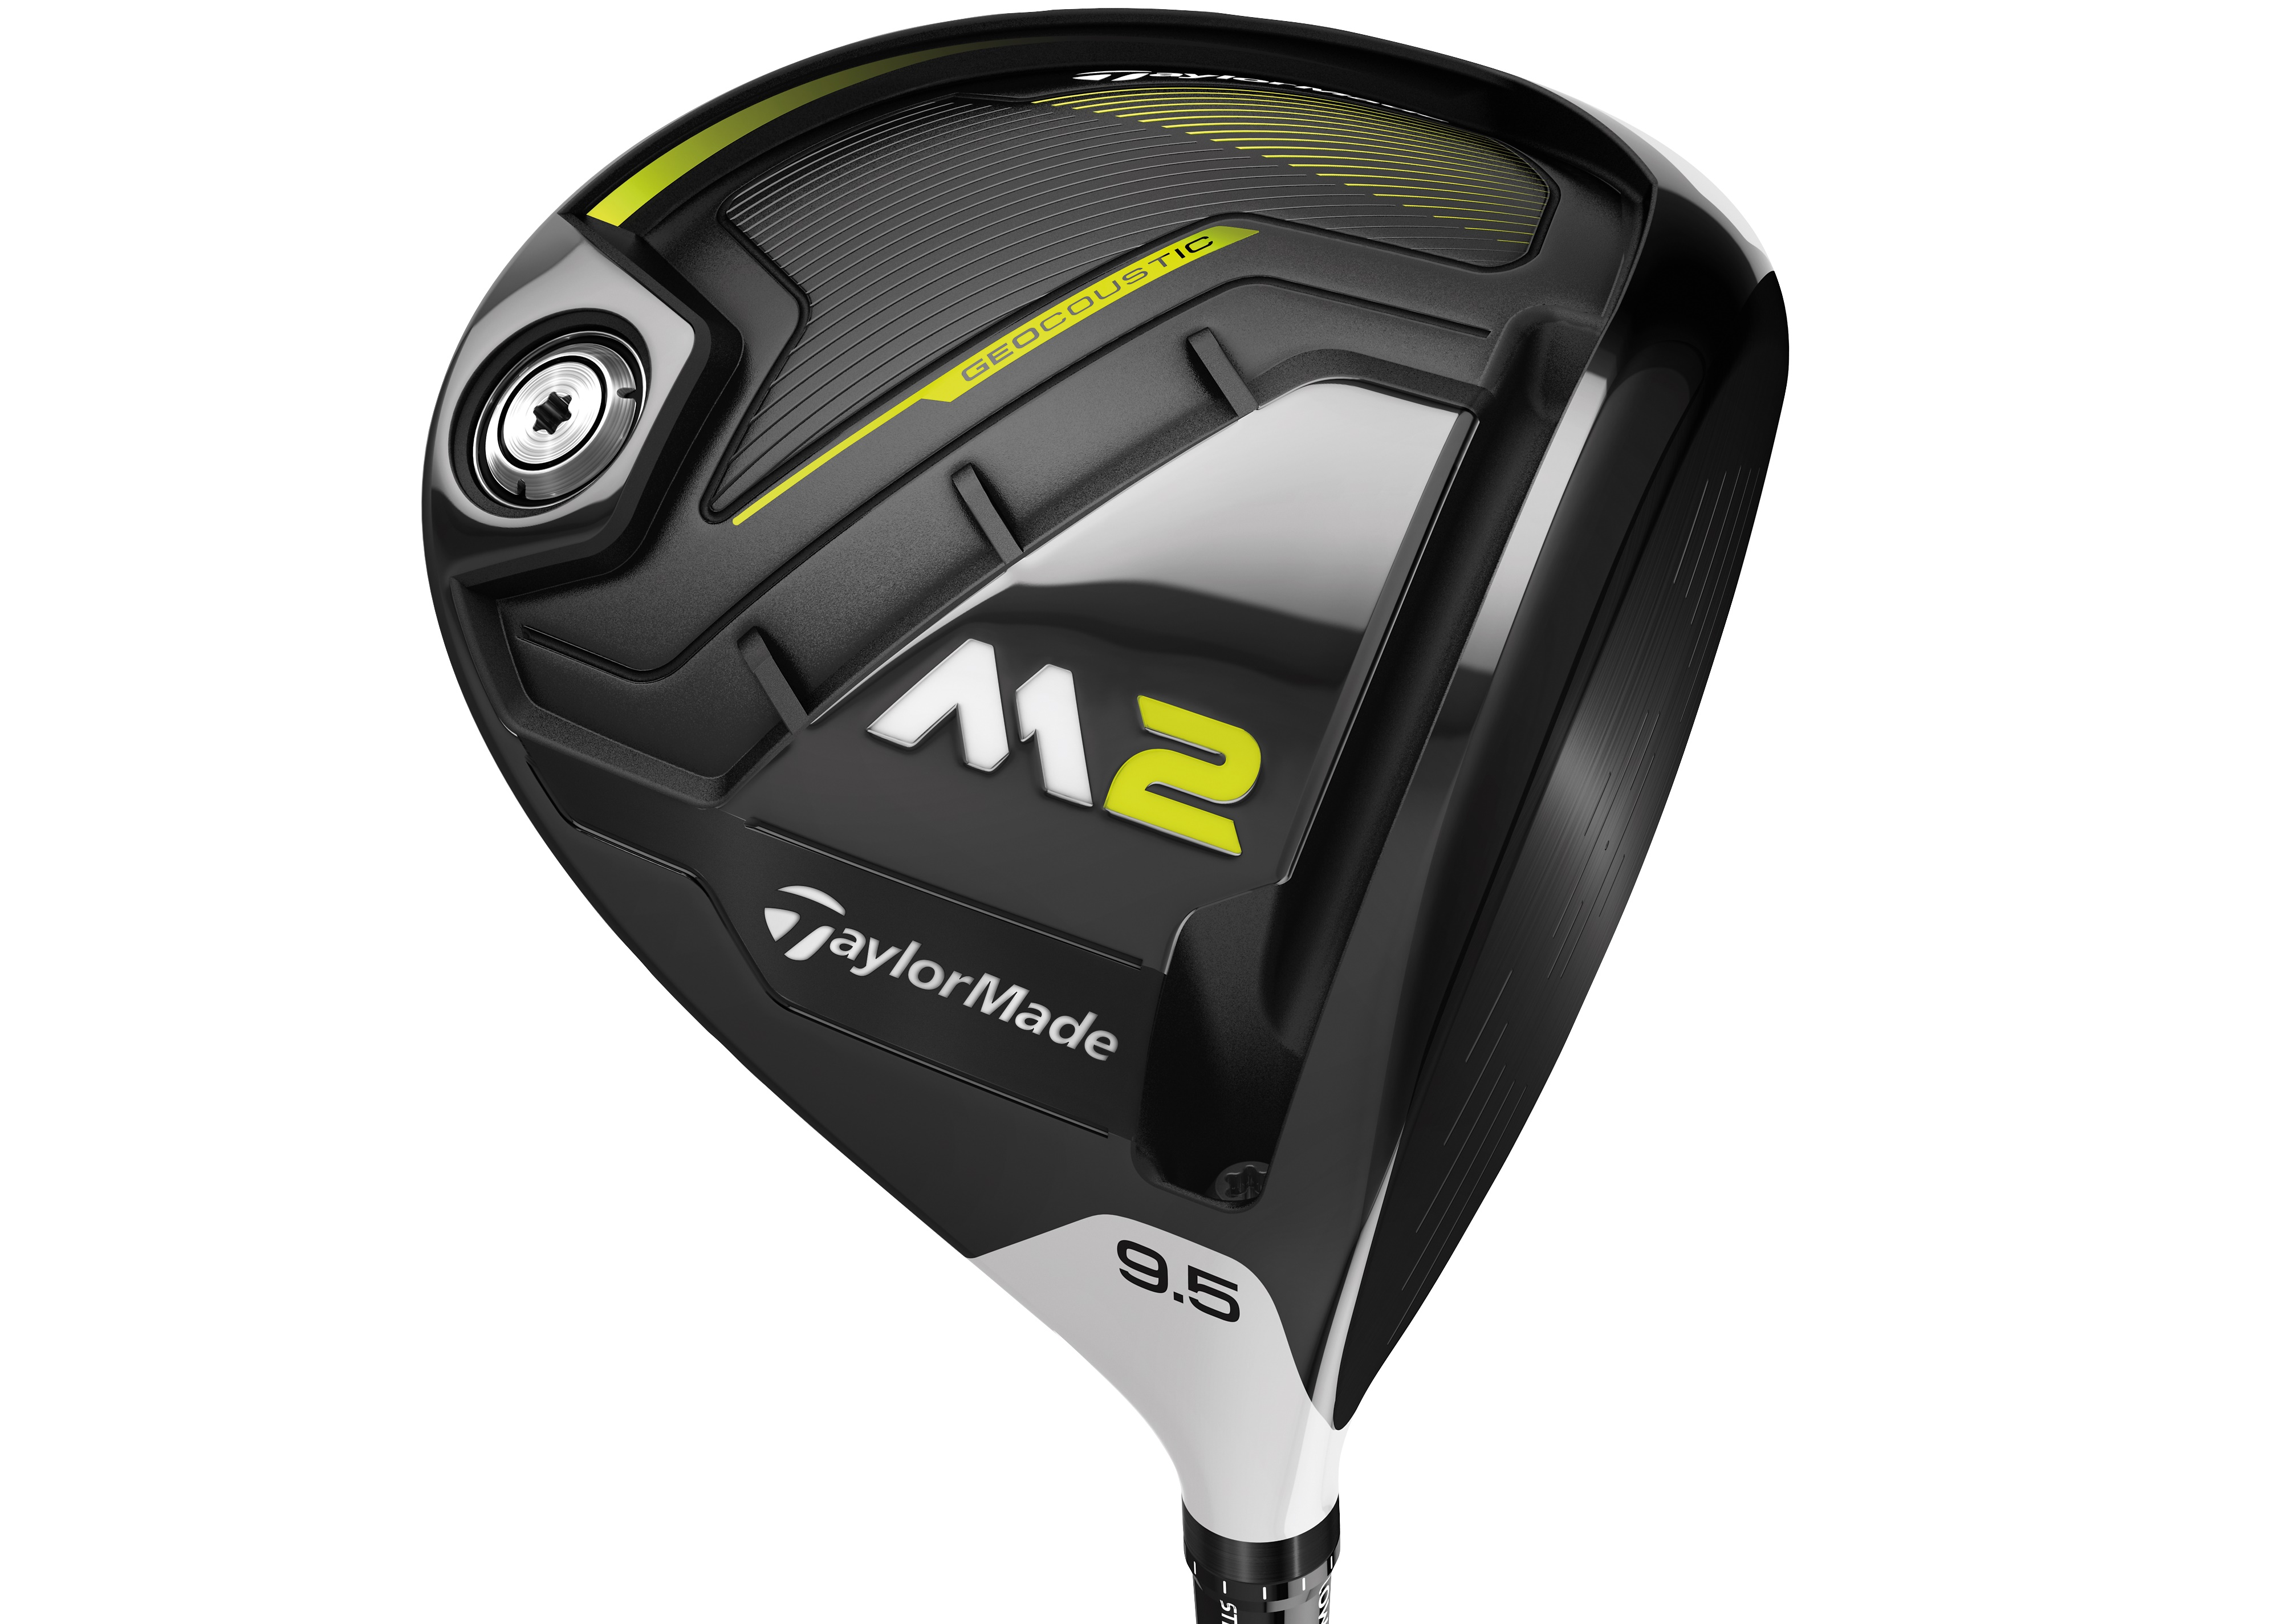 Equipment tip Do 50 percent of golfers need a draw-biased driver